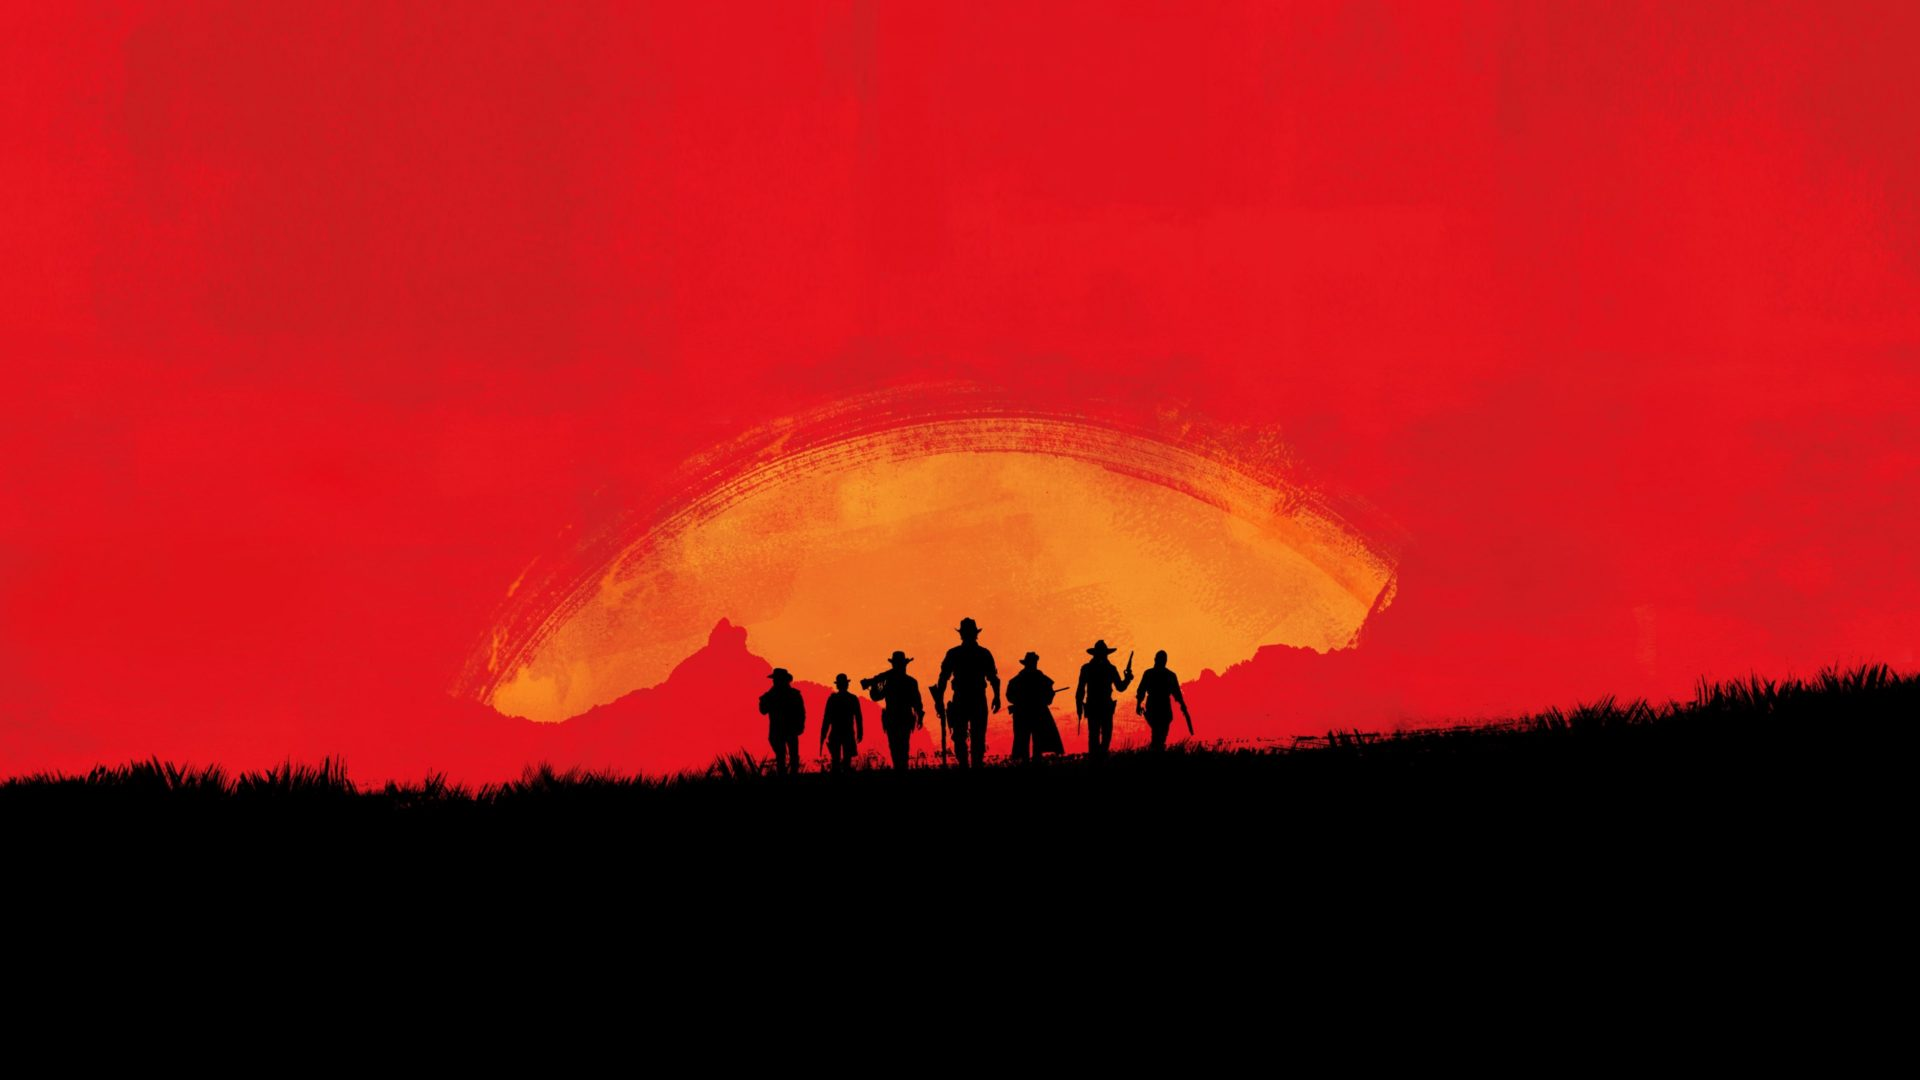 Red Dead Redemption 2: Special + updates(patches)+Steam